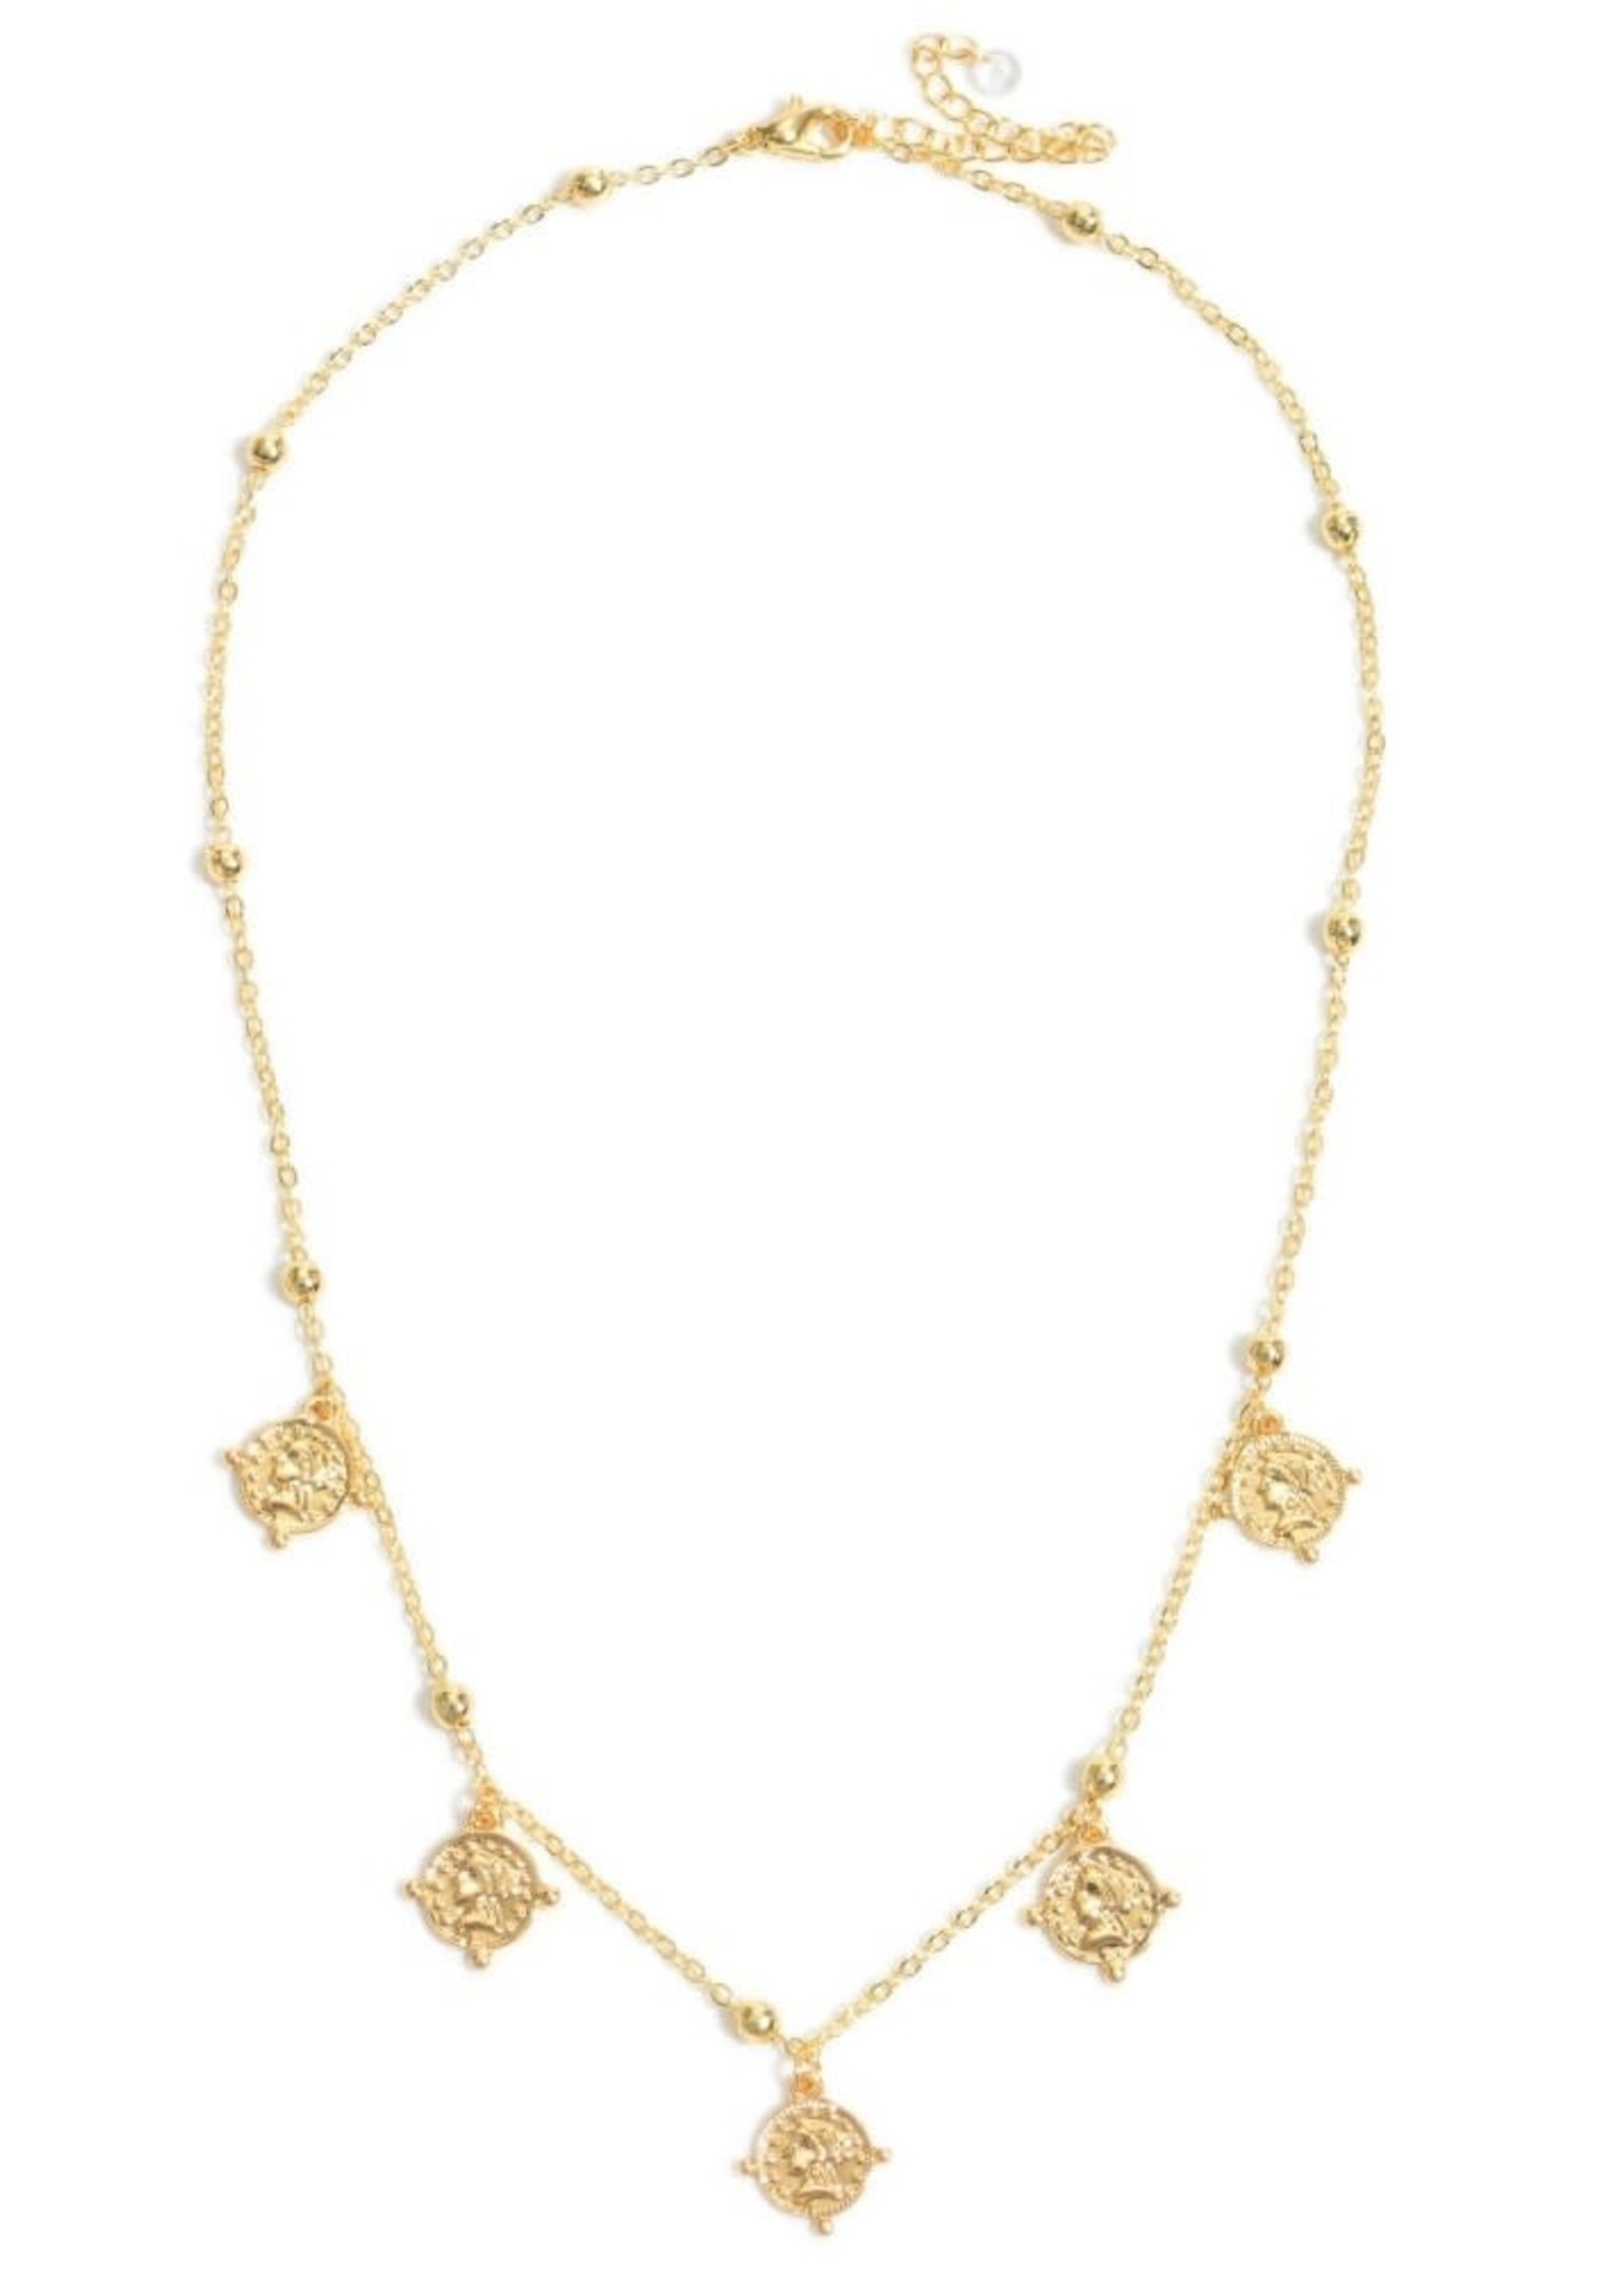 Judson Coin Floater Necklace in Gold